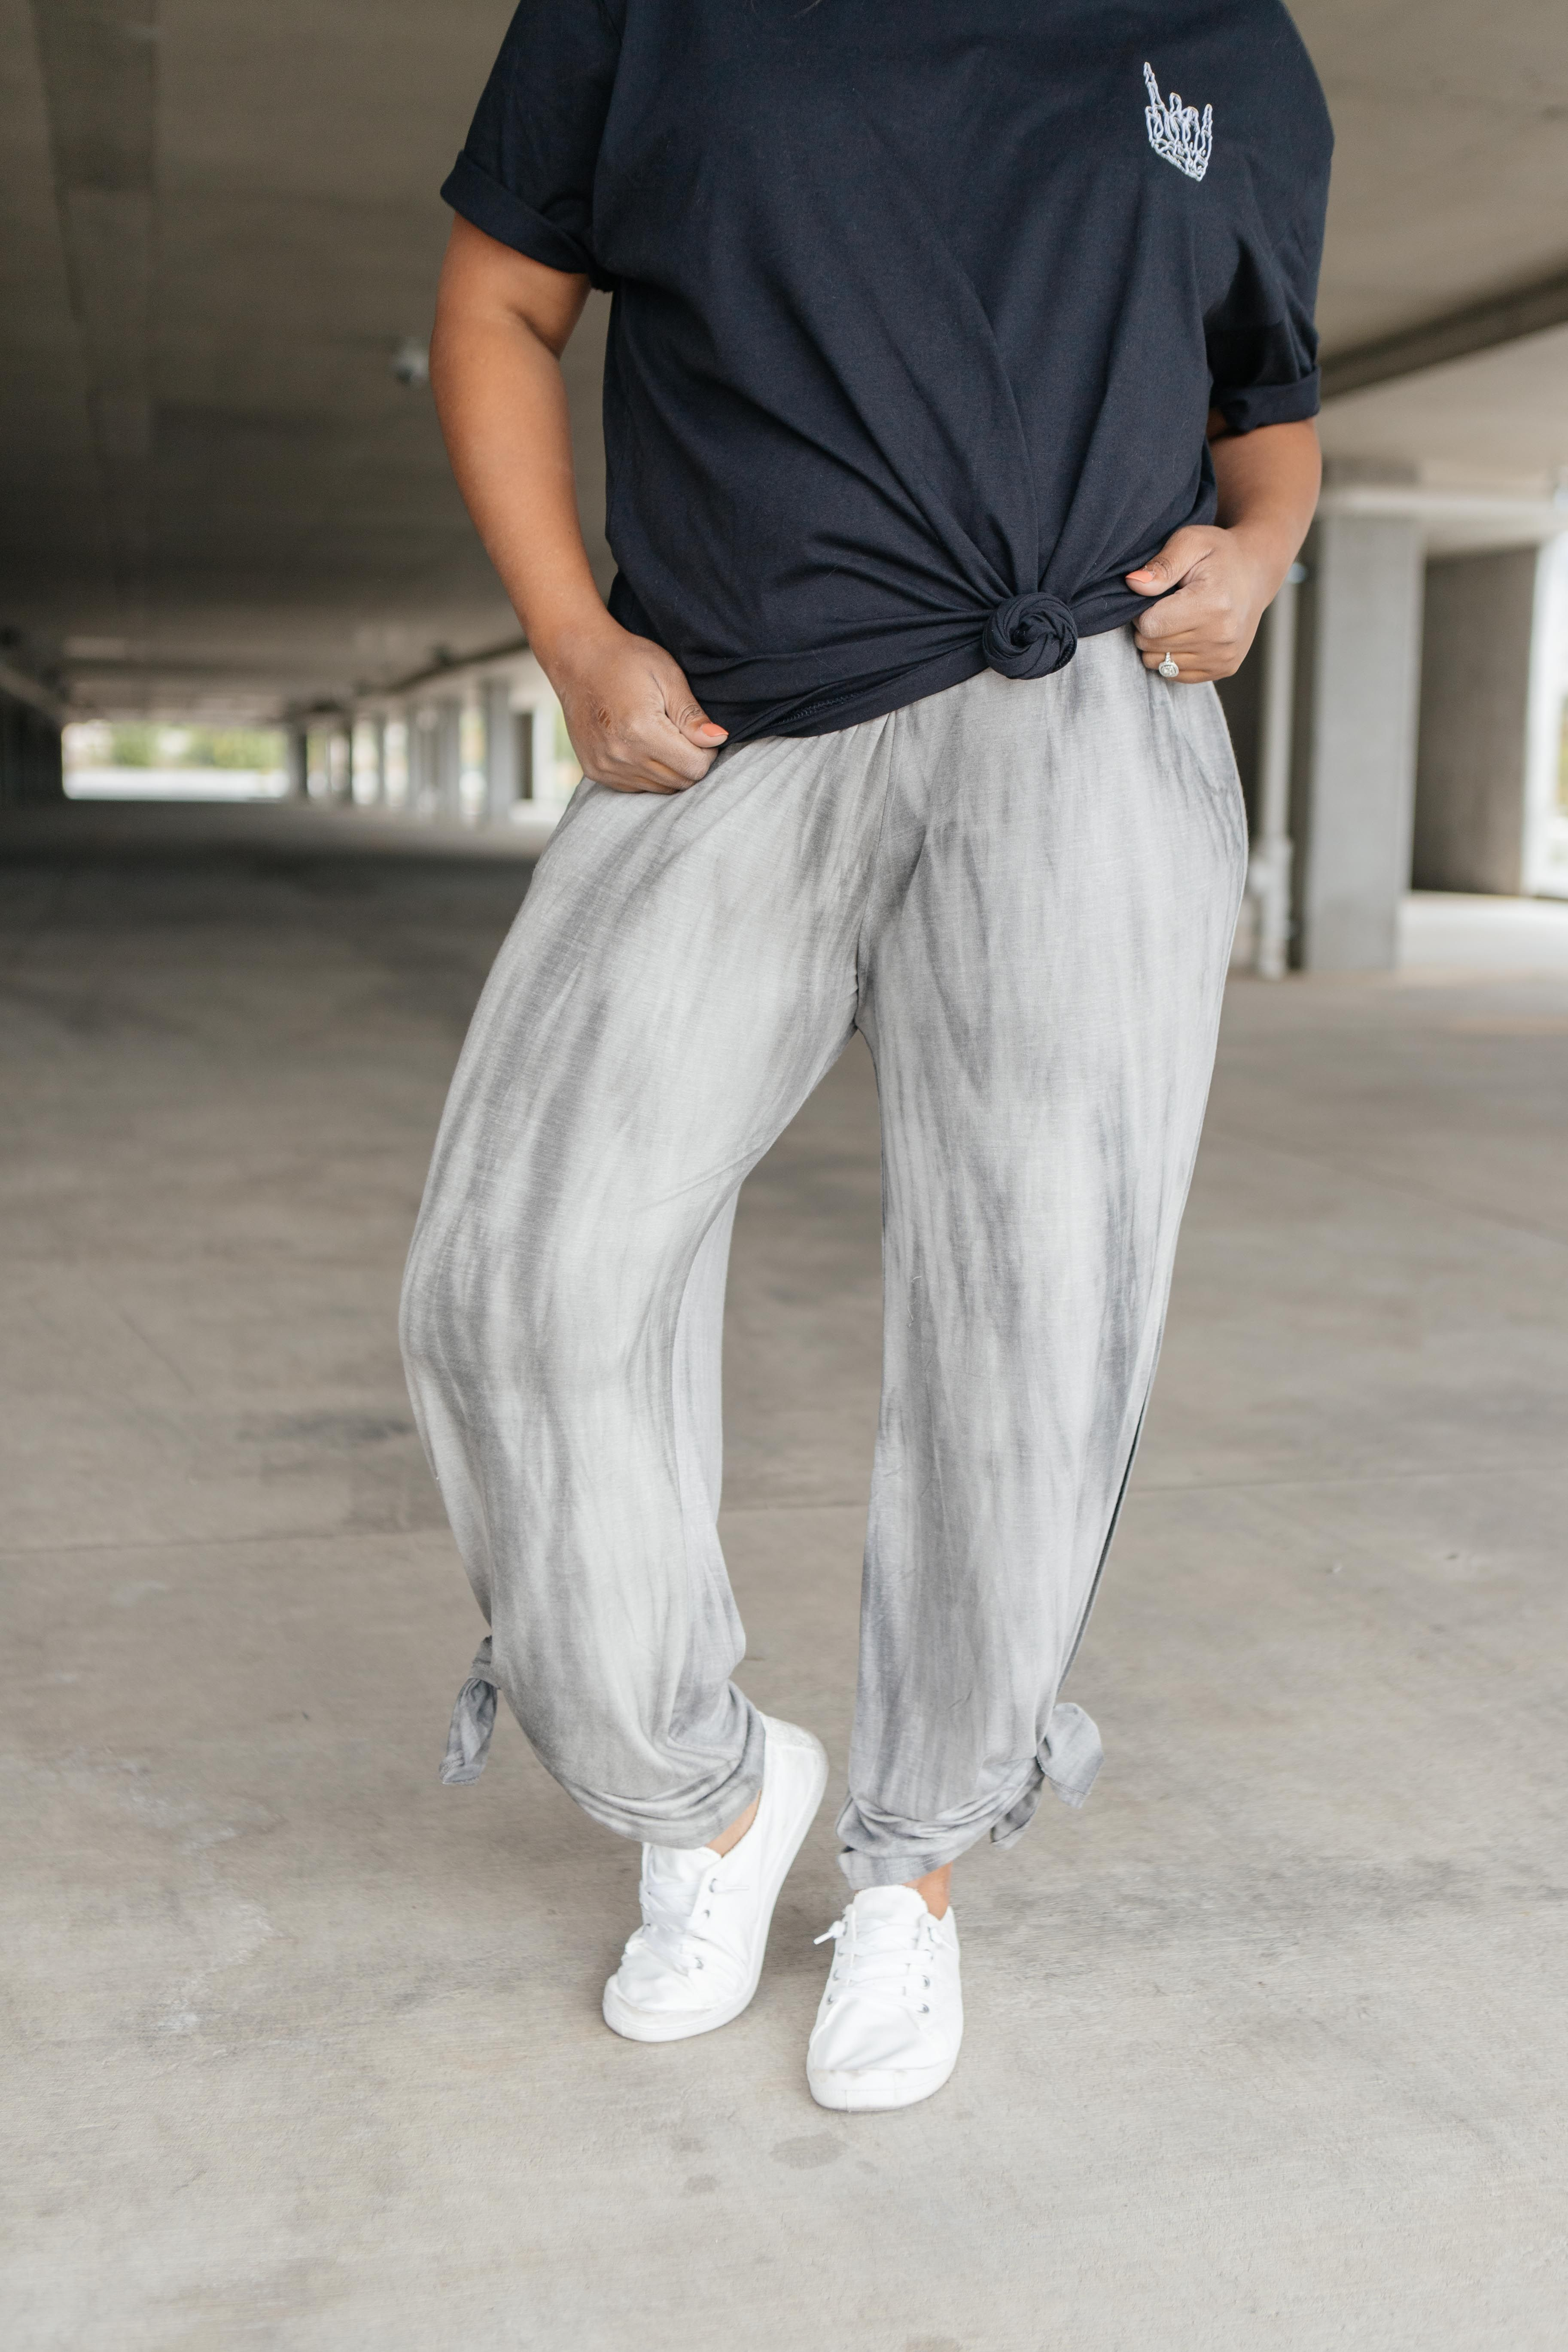 These pants are so soft and stretchy it's almost criminal. They feature the cutest adjustable ties at each hem and a stretchy waistband. They're perfect for the beach, the airport, a picnic, or even just hanging out around the house! LightweightStretchyAdjustable Ties At Hem Pockets95% Rayon 5% Spandex Fits True To Size Made In USA*Measurements listed below are of the actual clothing item.* XS: Waist 28